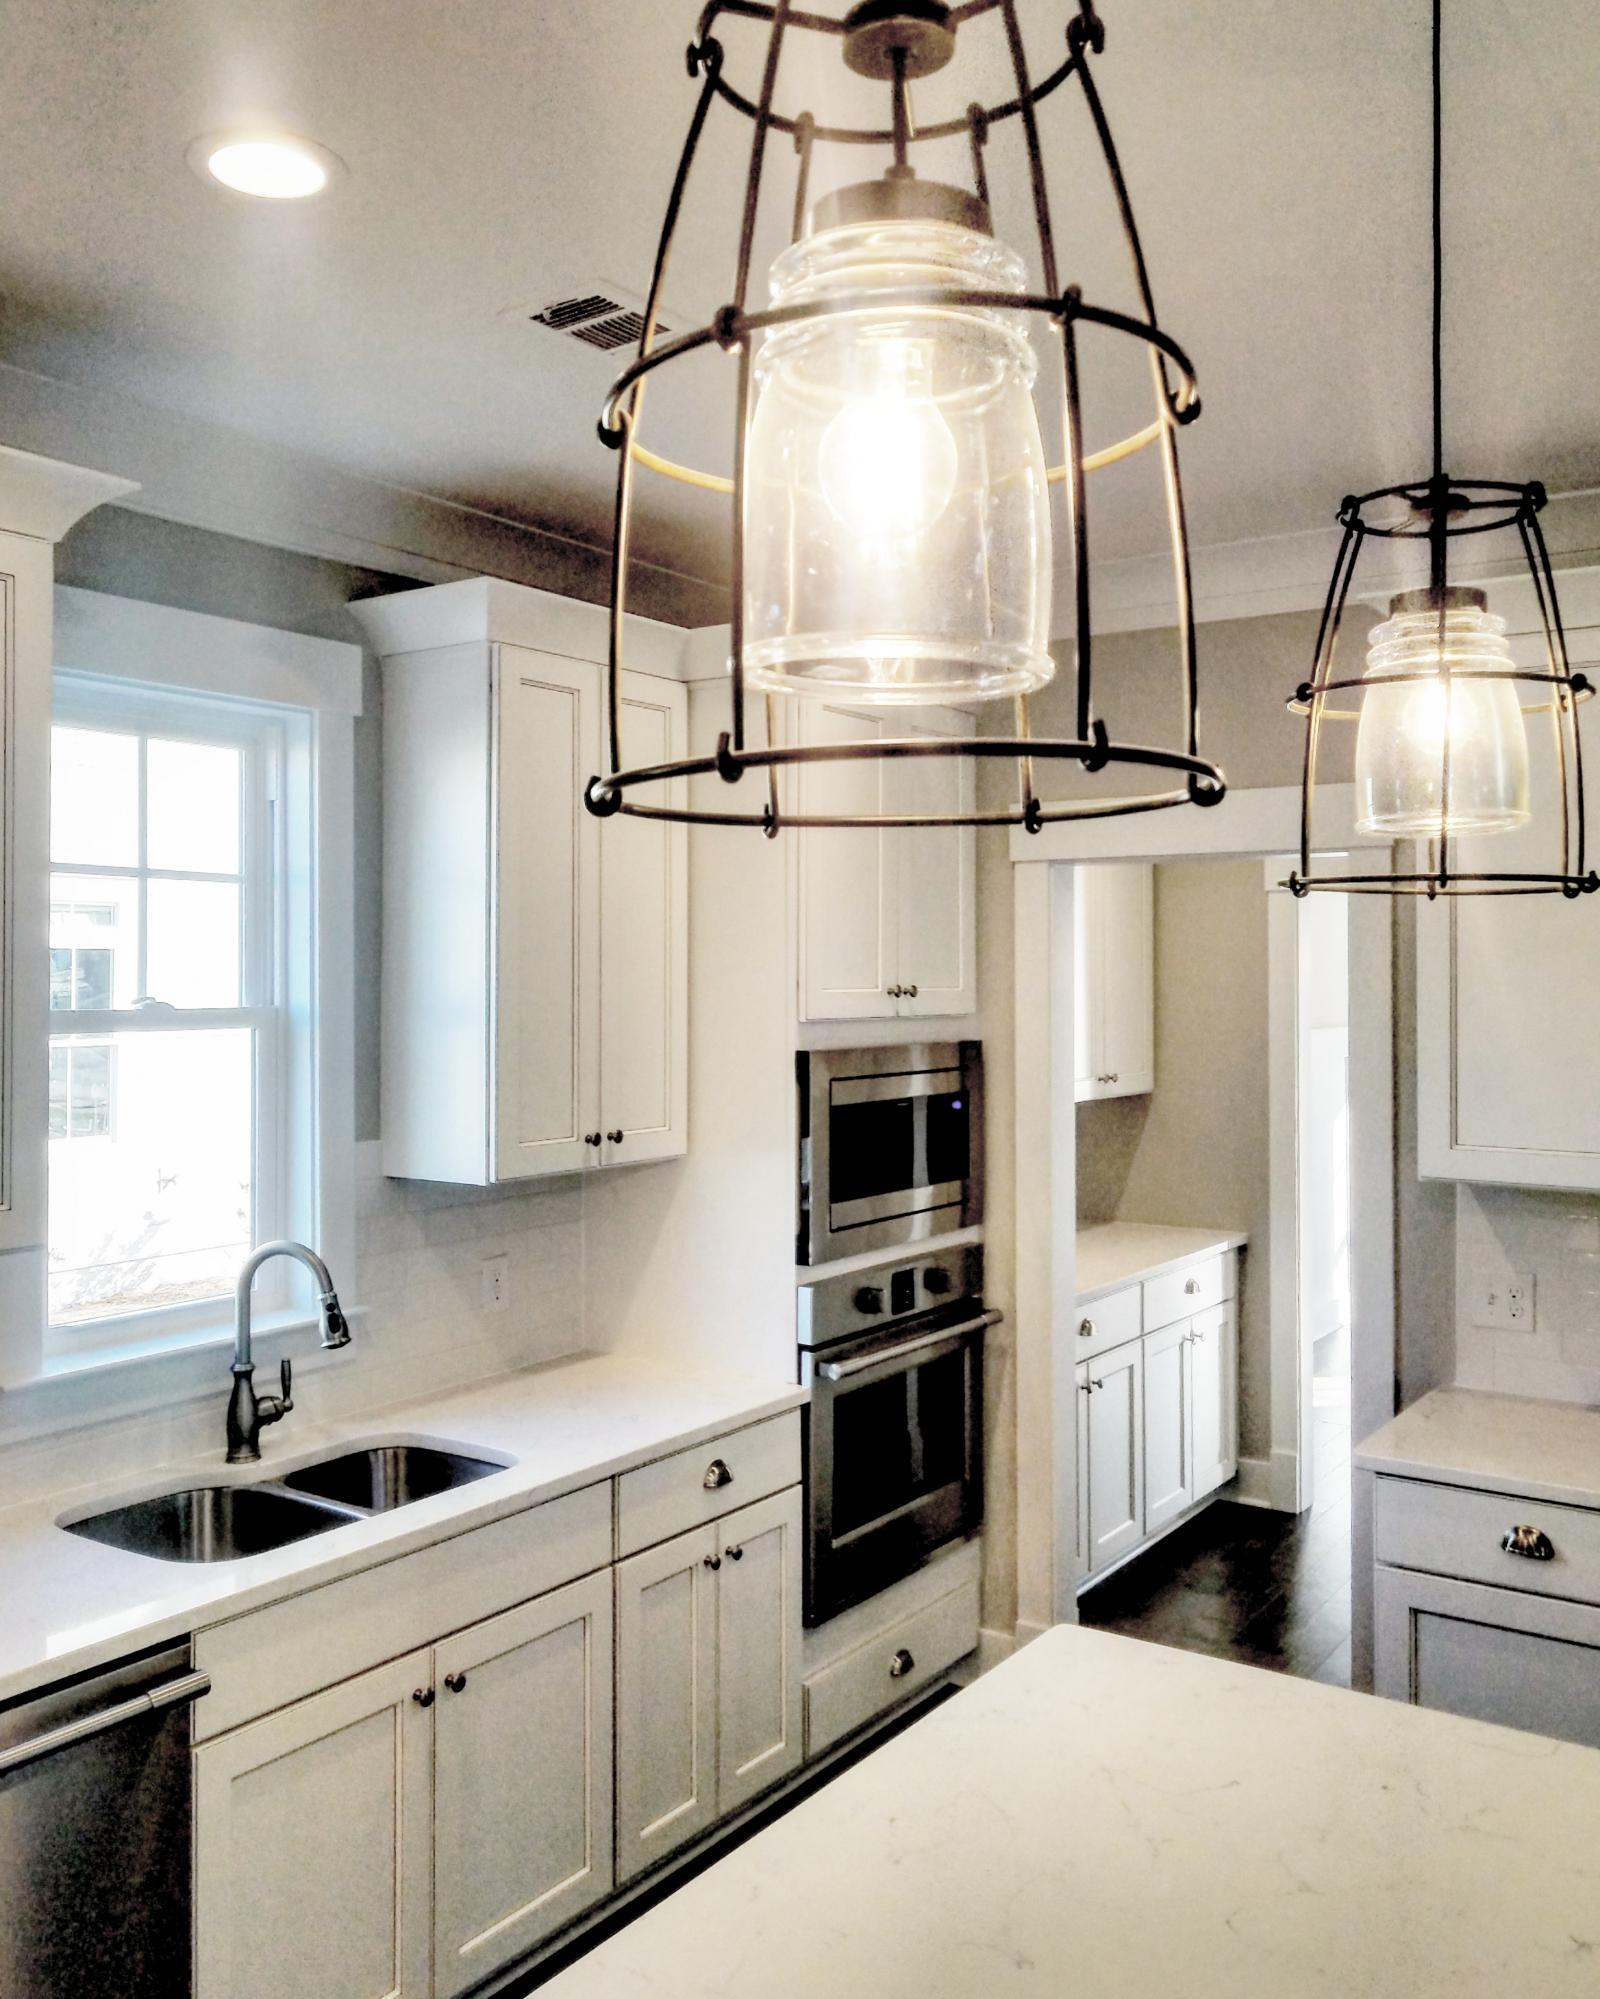 Kitchen featured in the Ossabaw By Konter Quality Homes in Savannah, GA